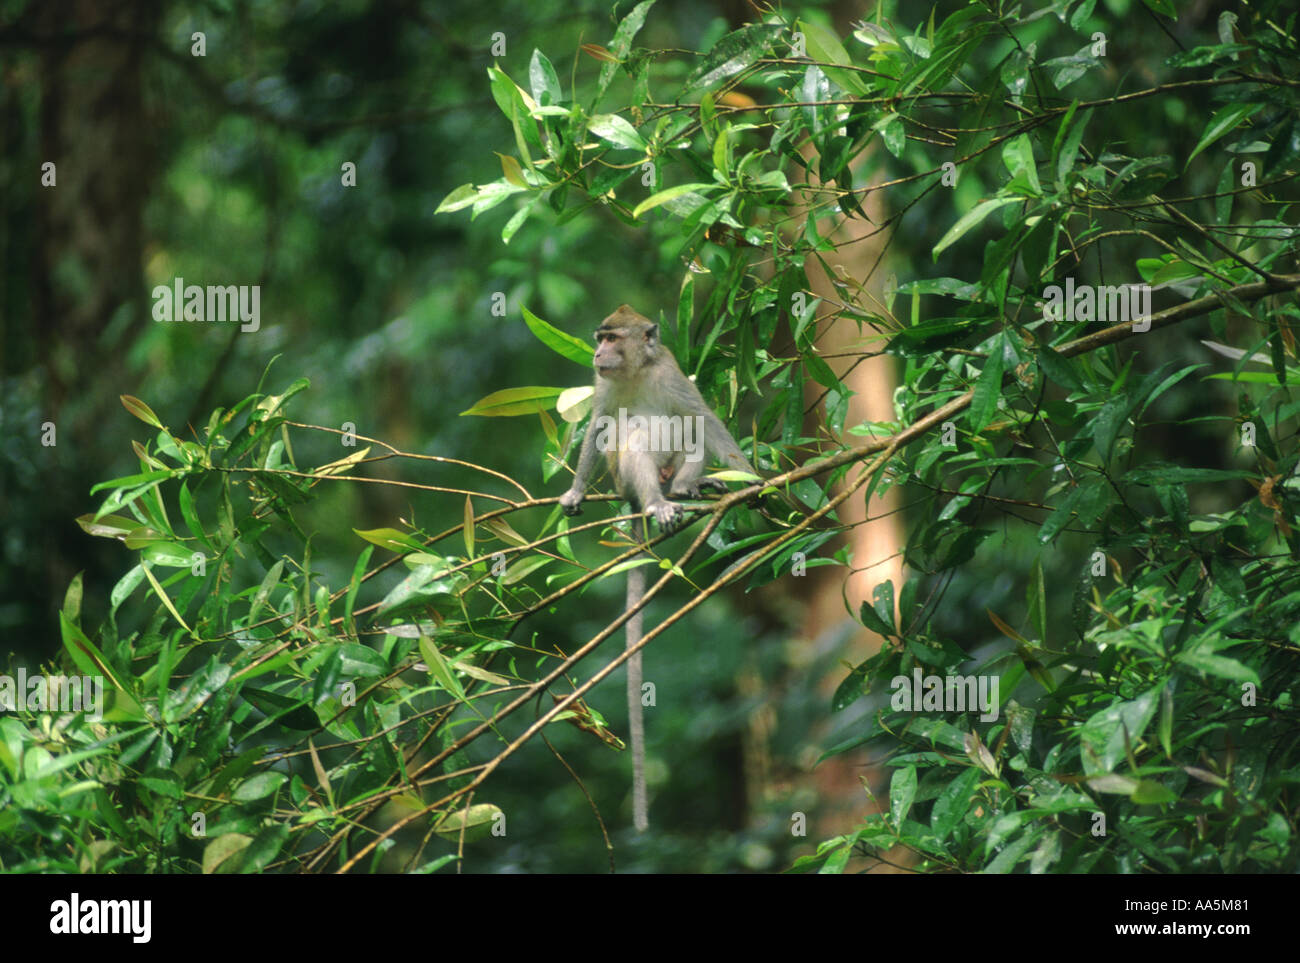 Long tailed Macaque in rainforest Borneo - Stock Image